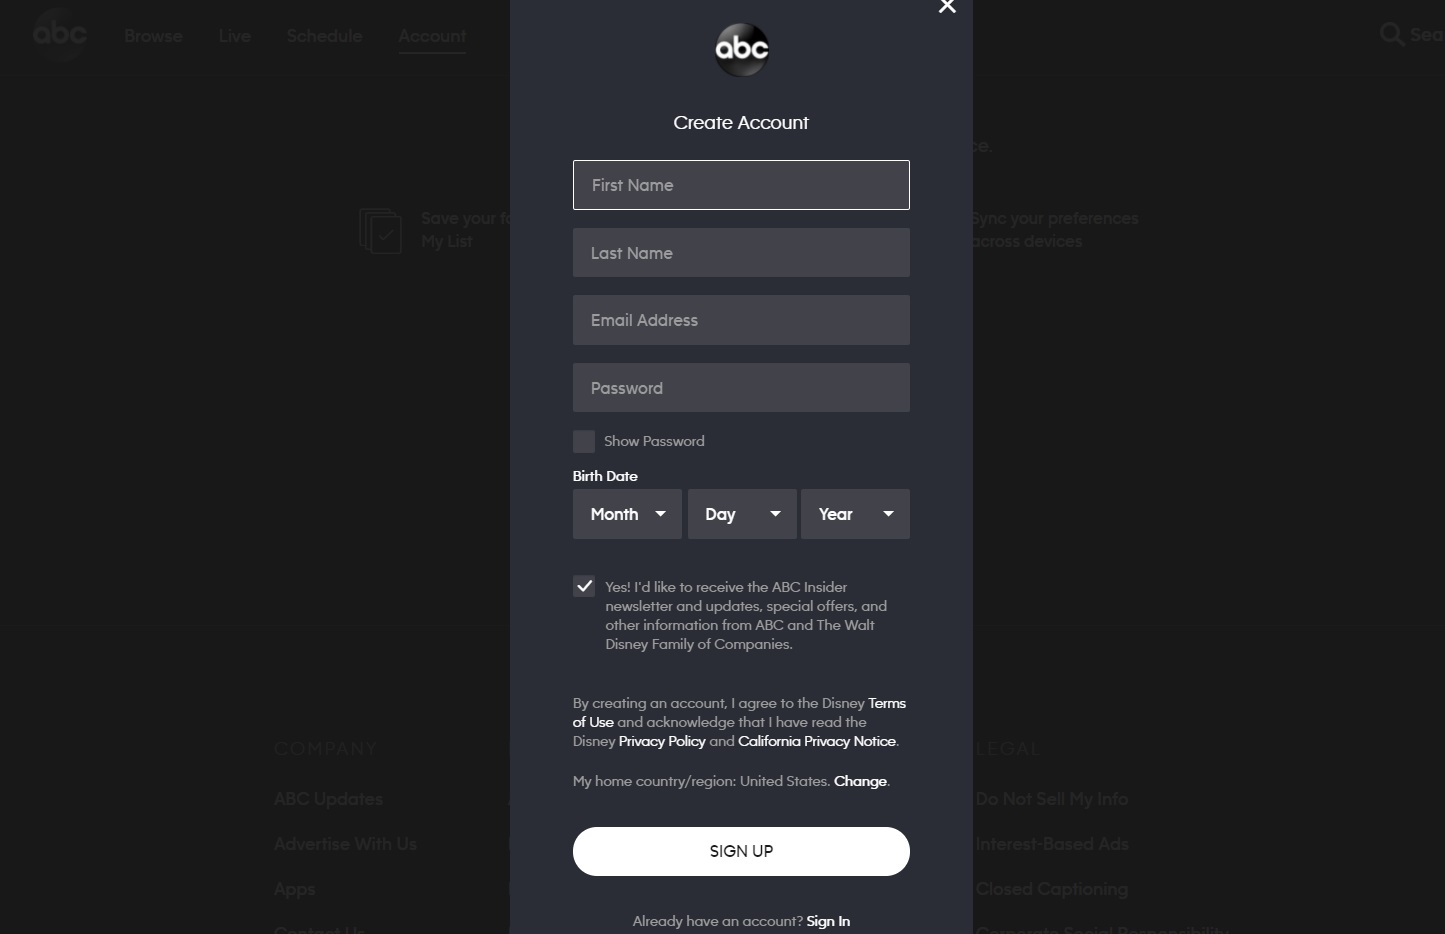 abc-sign-up